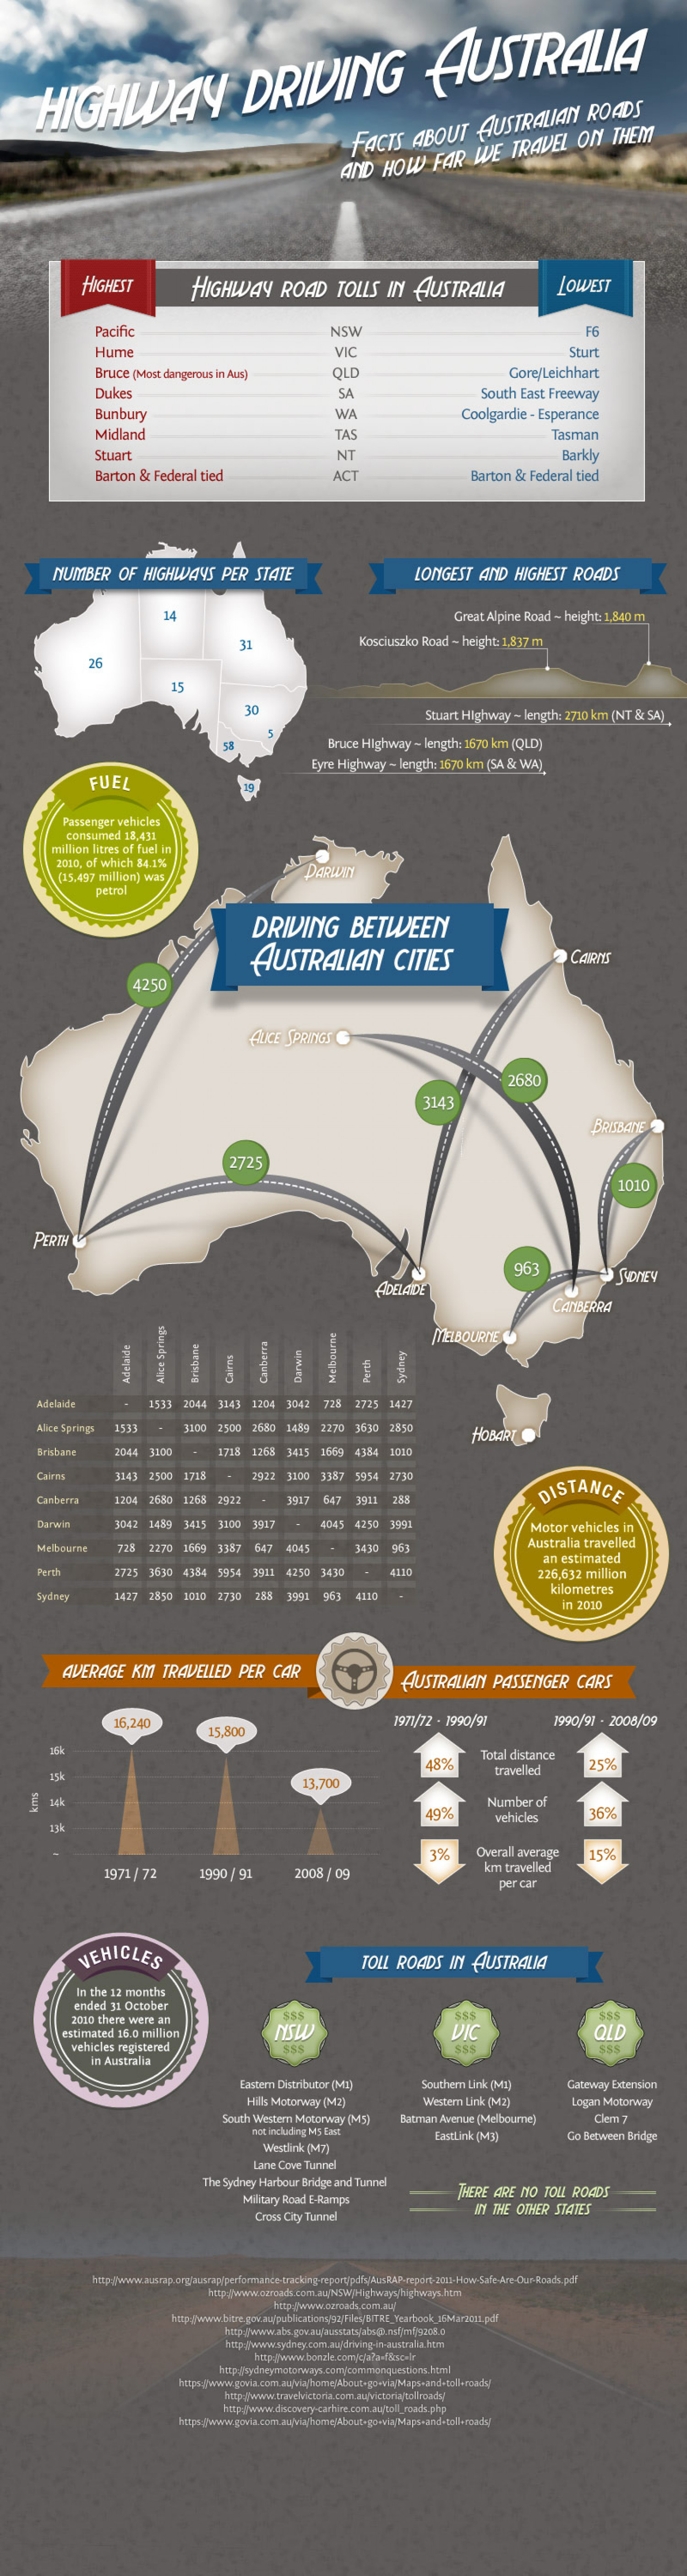 Driving Australian Highways Infographic